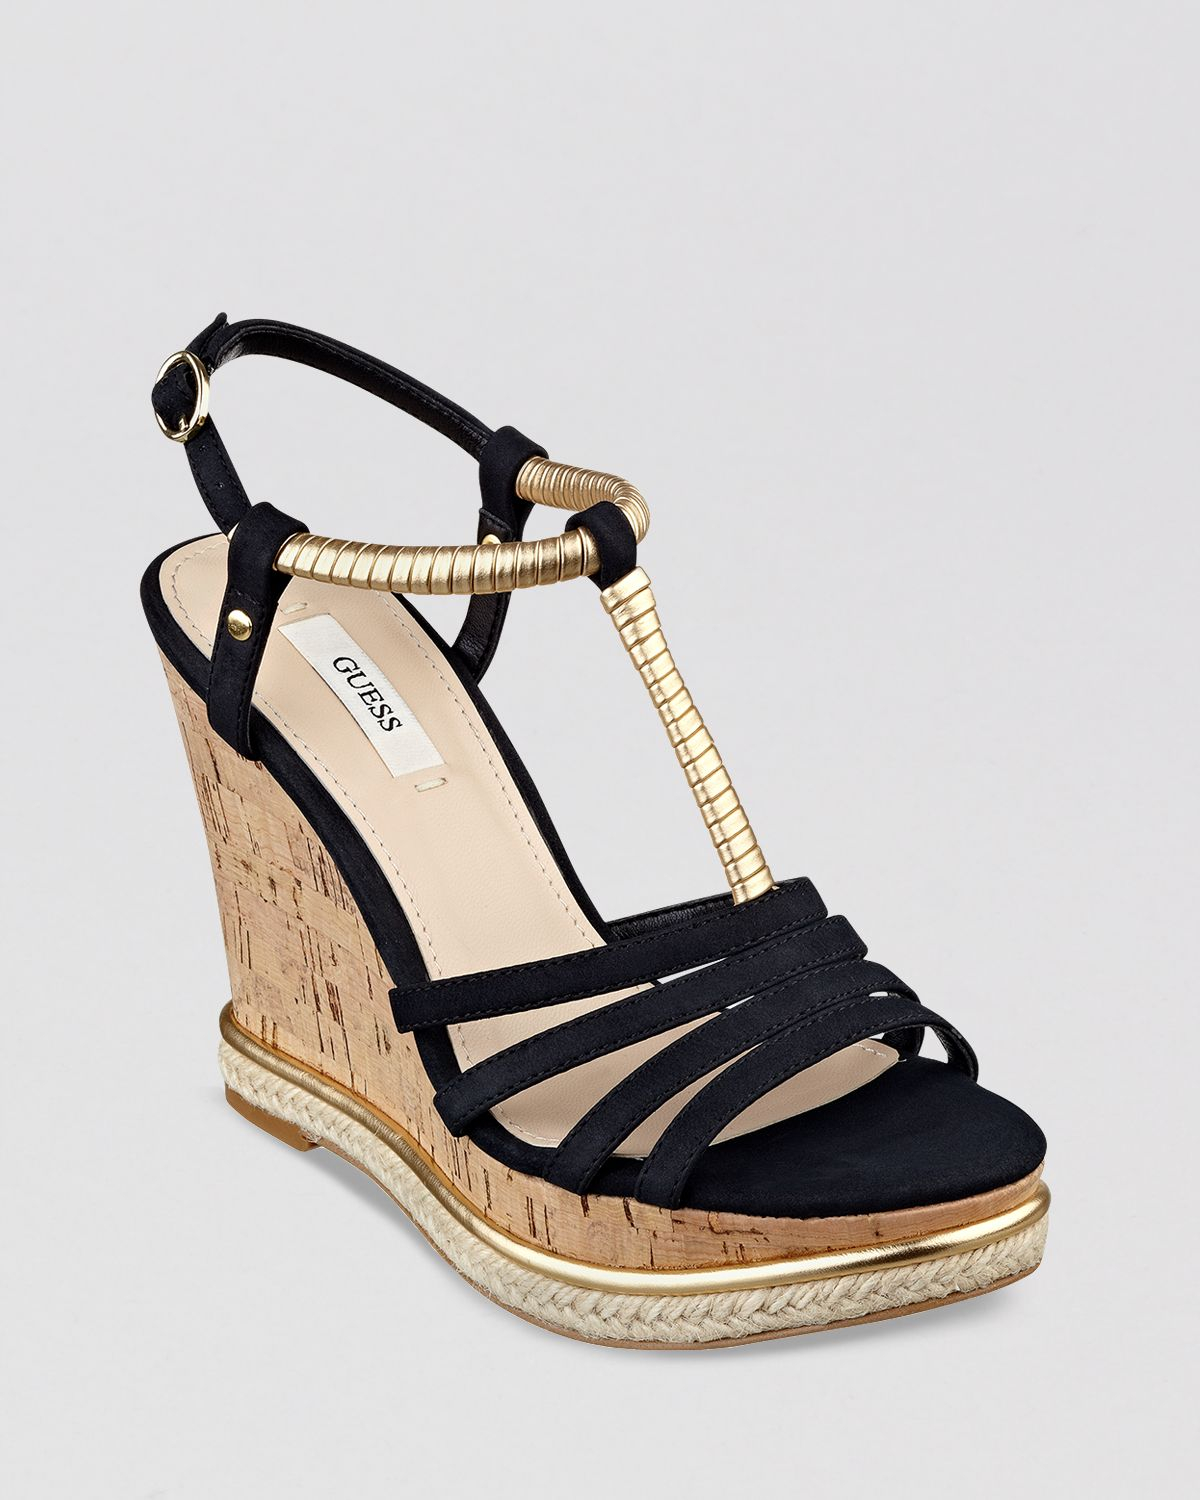 guess open toe platform wedge sandals hilary in black lyst